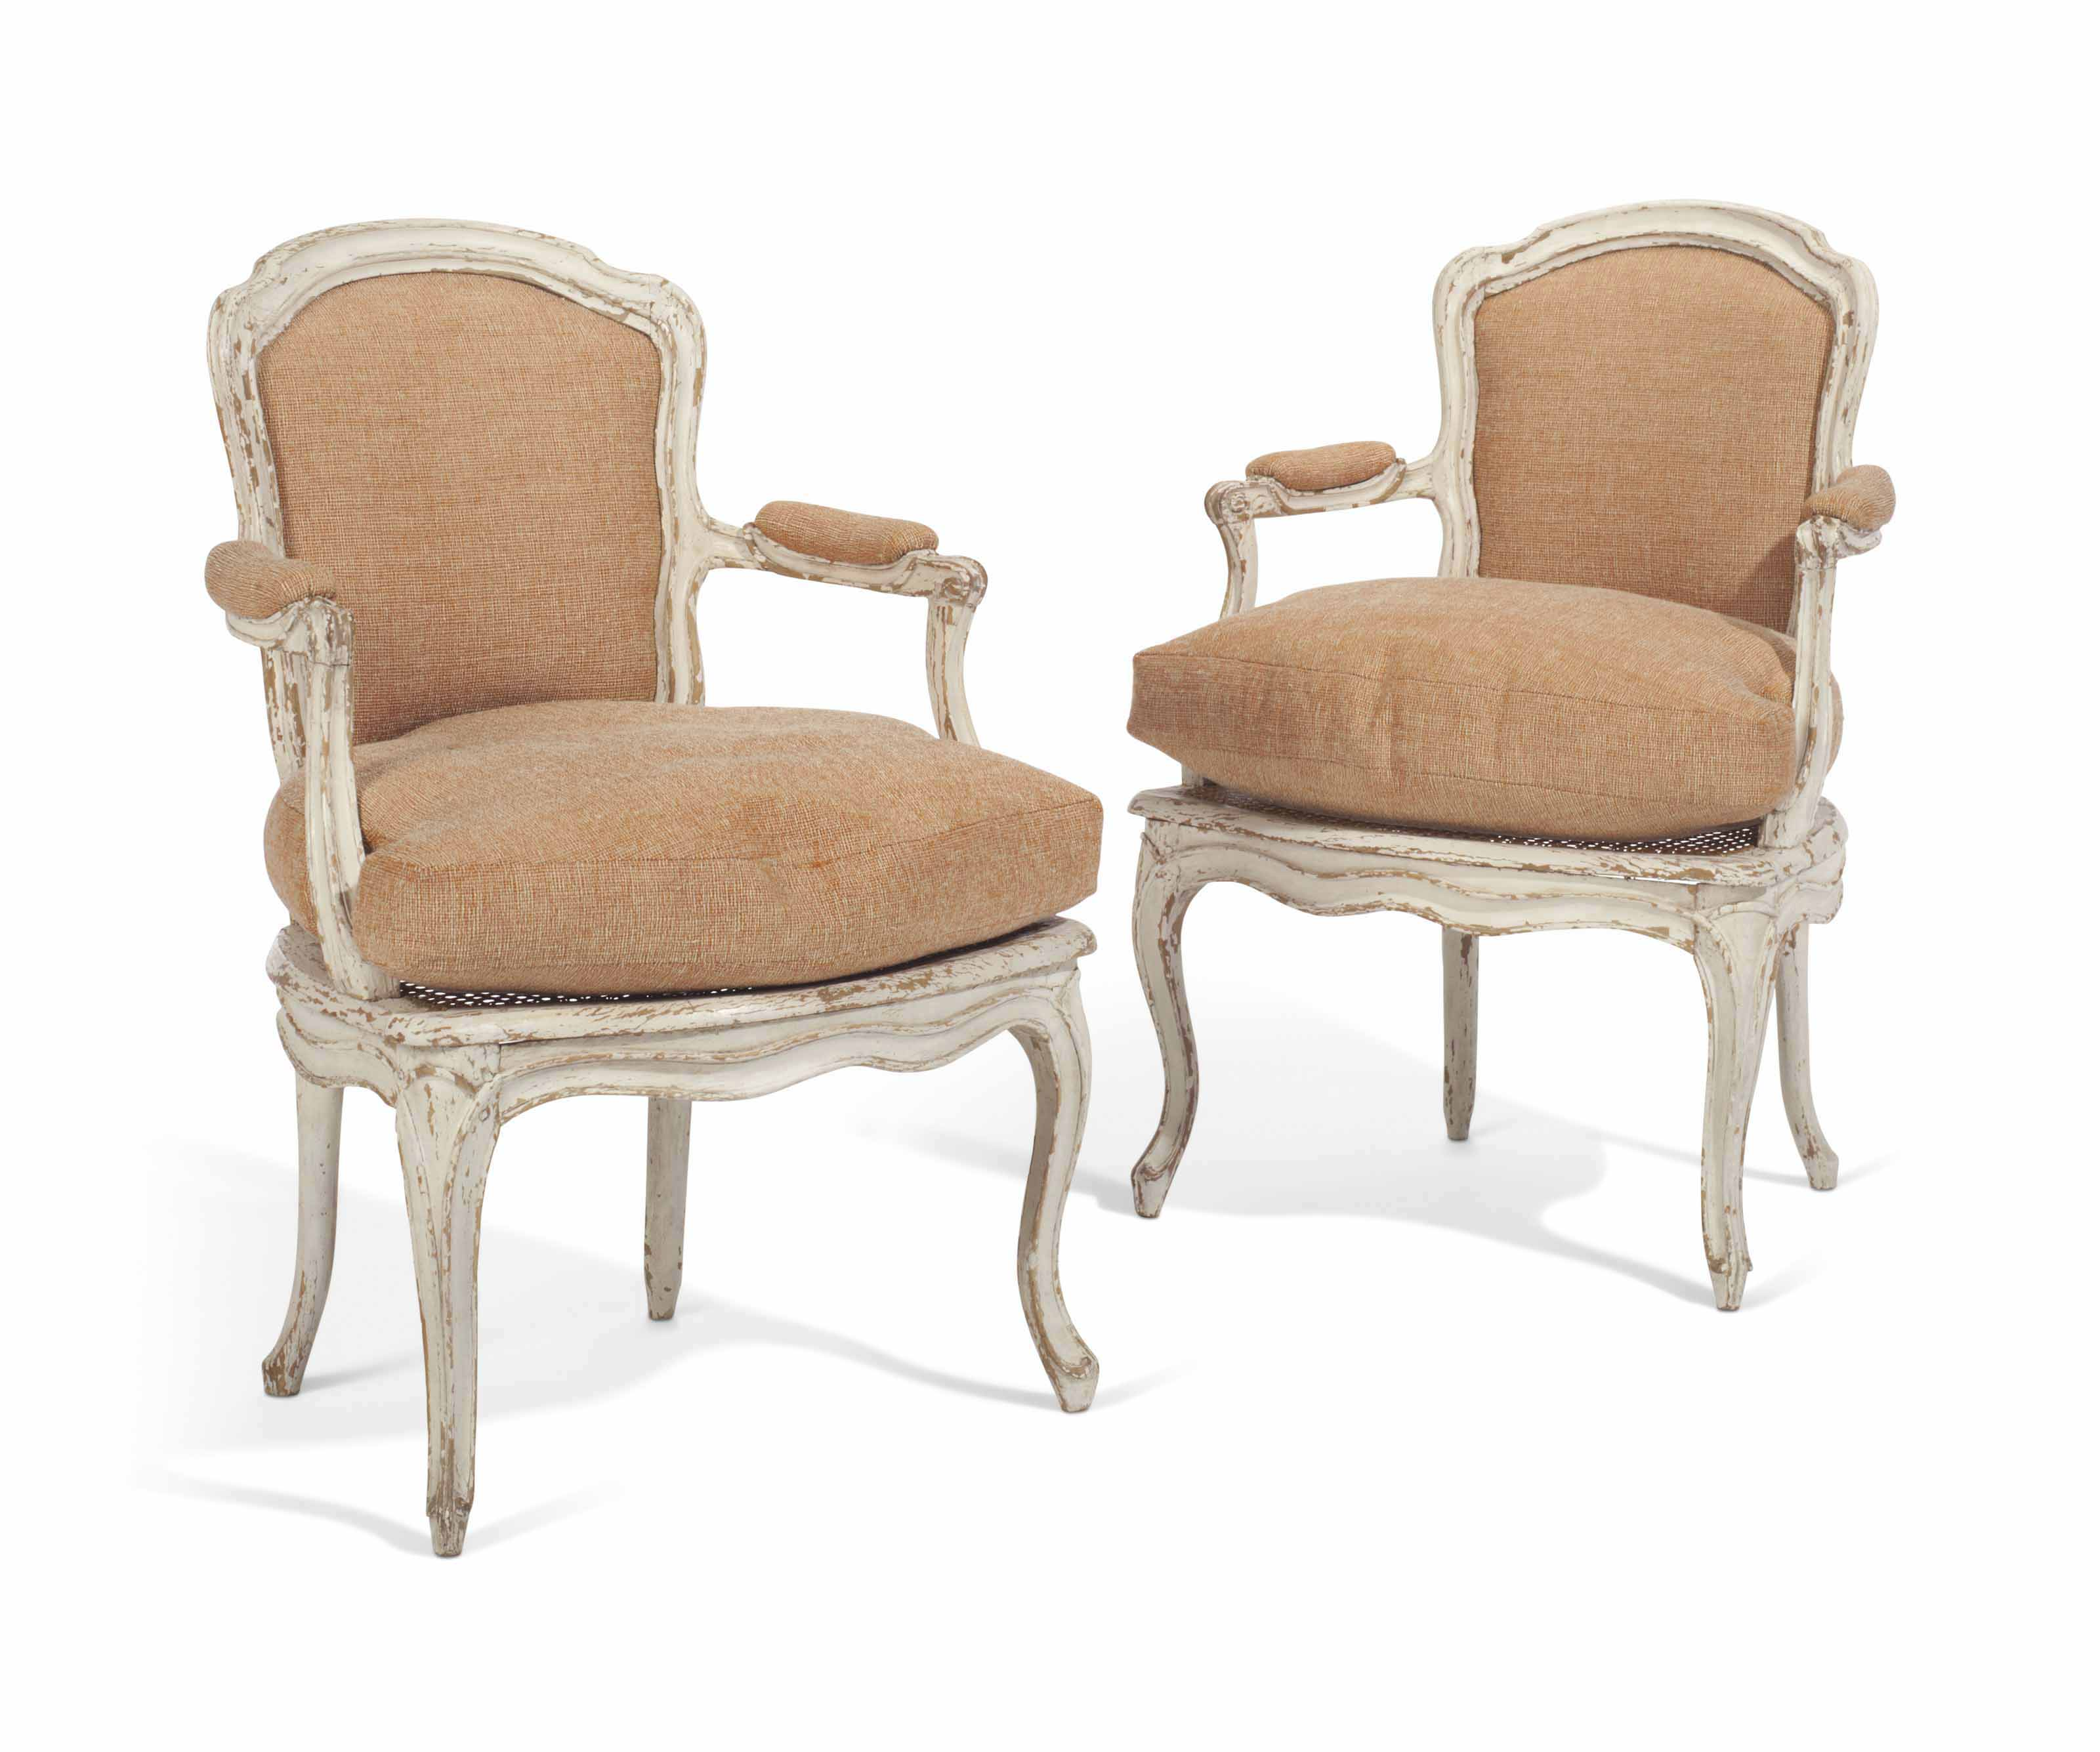 A PAIR OF LOUIS XV WHITE-PAINTED FAUTEUILS